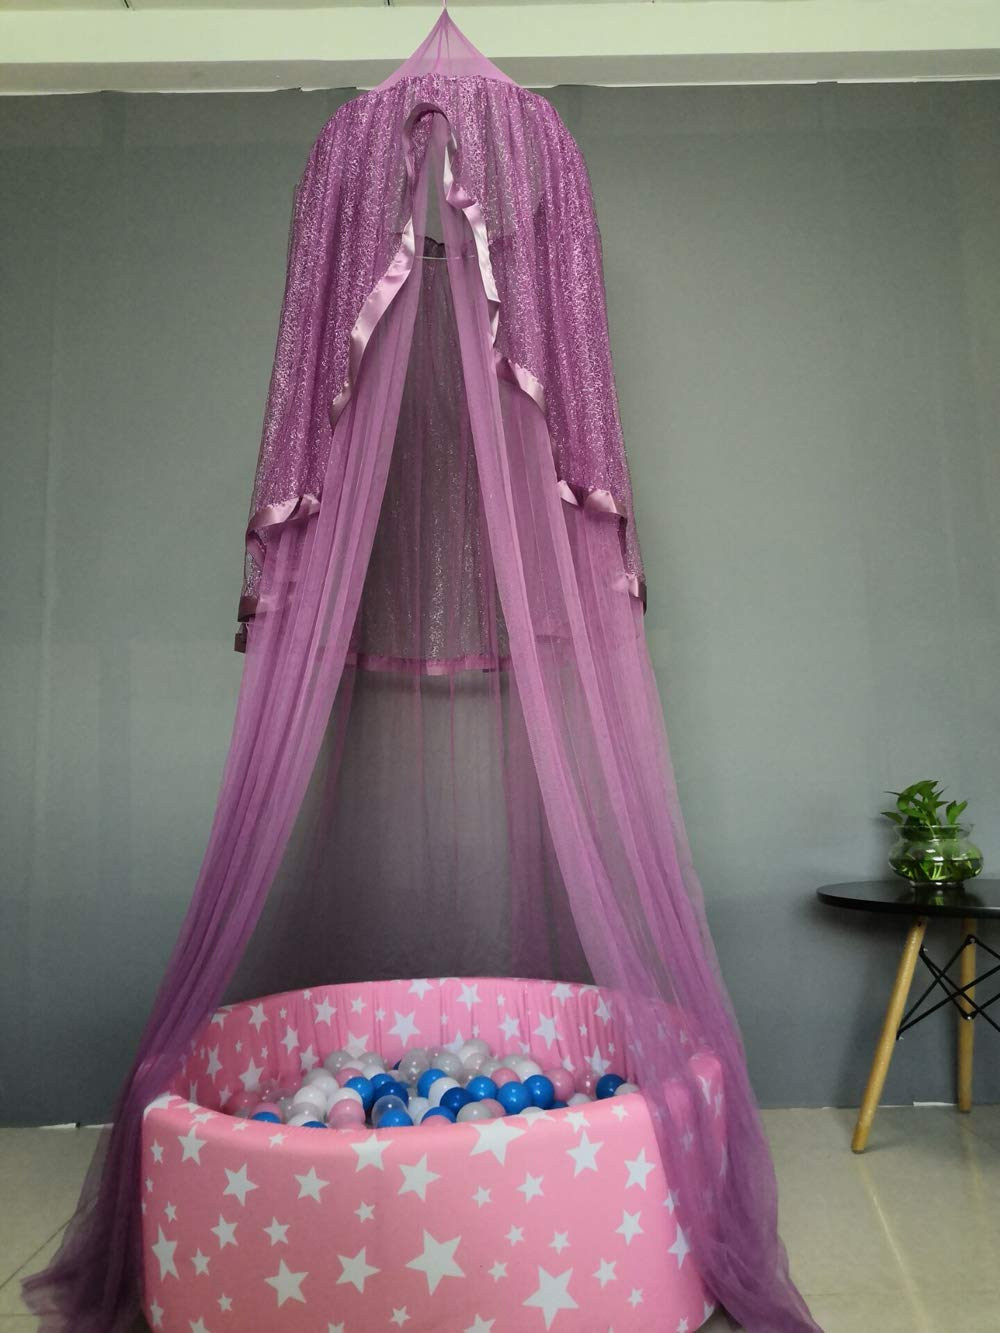 USTIDE Princess Bed Canopy - Beautiful Silver Lace Childrens Bed Canopy in Dreamy Purple